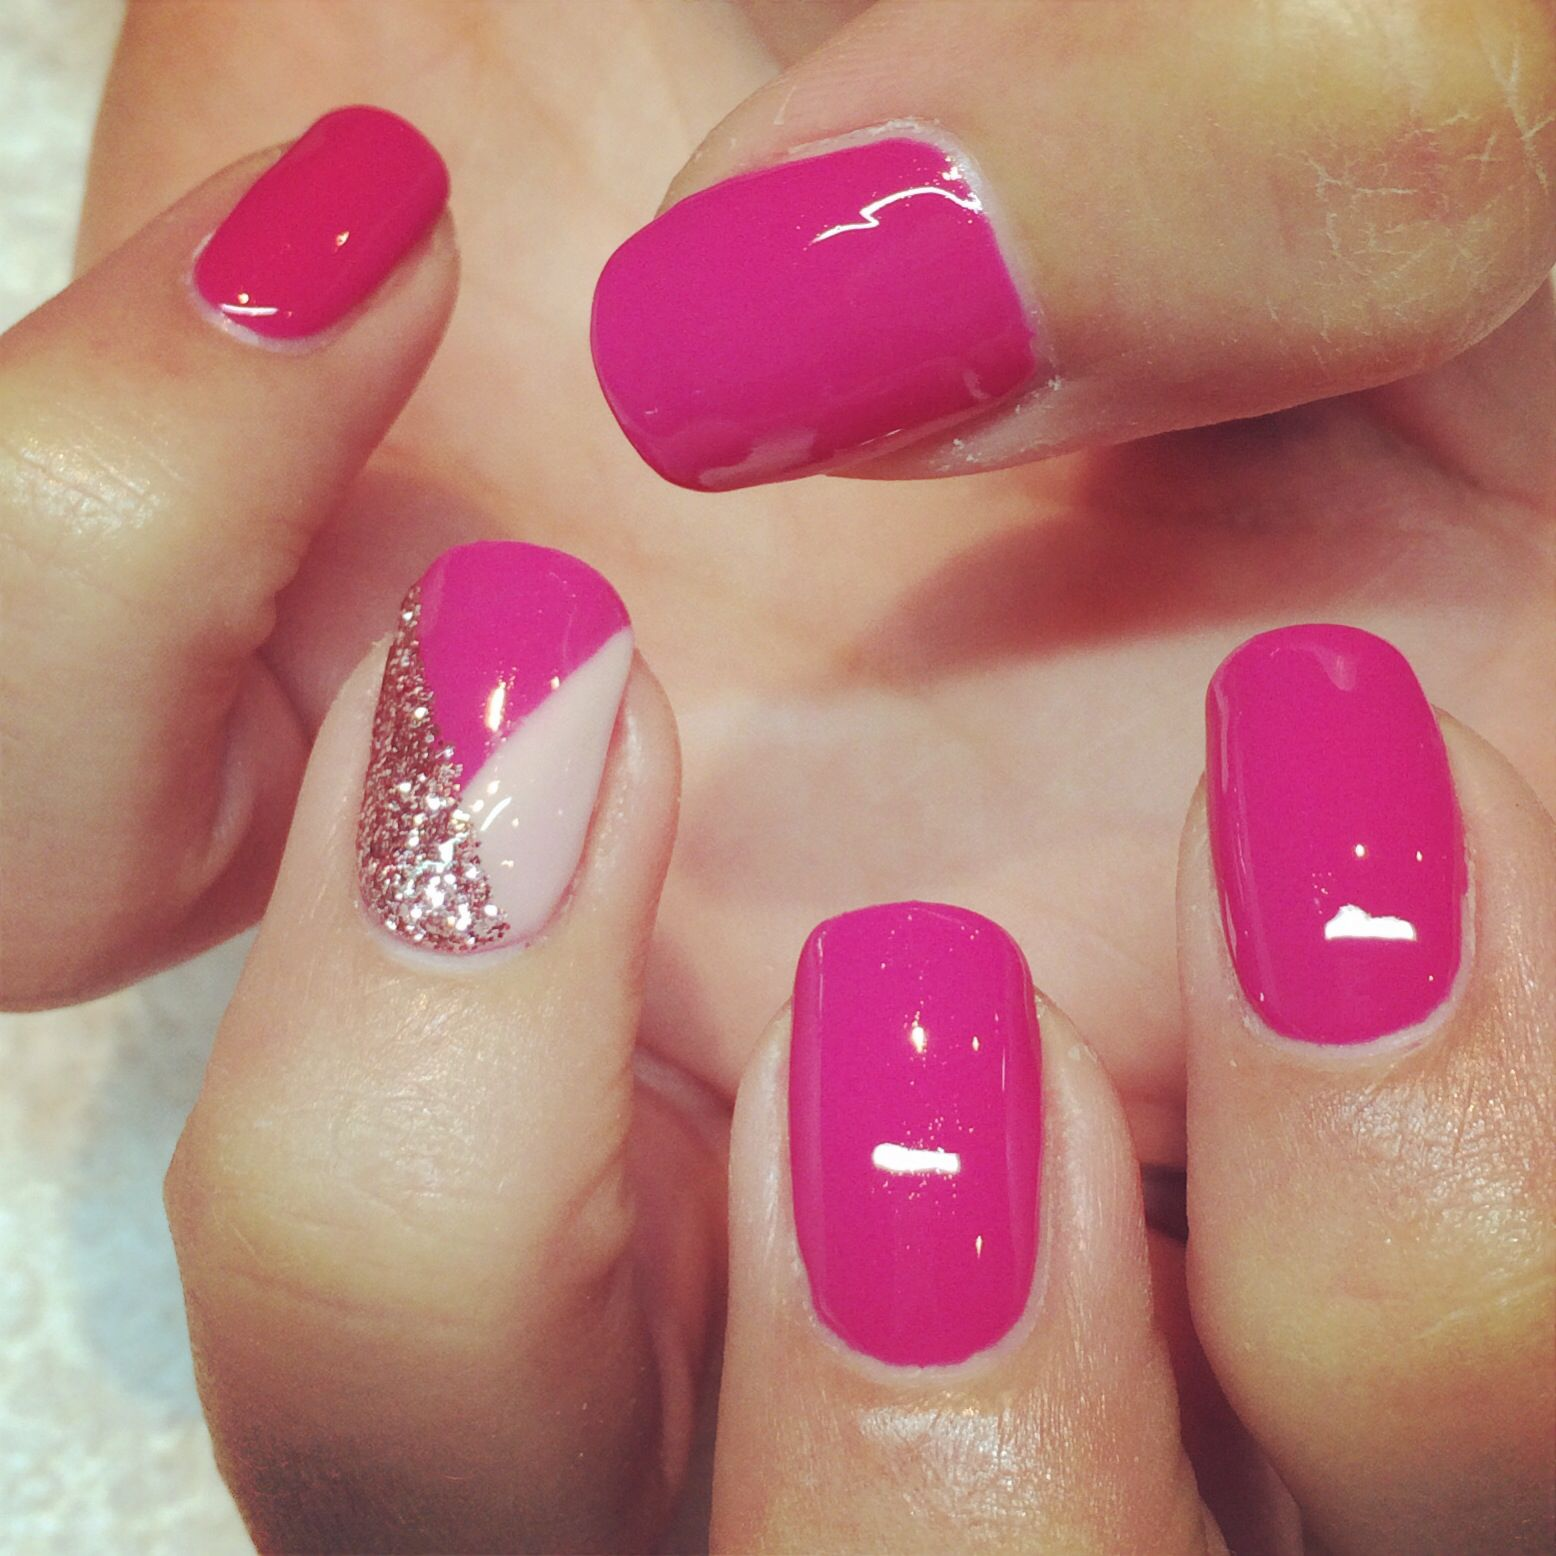 Hot Nail Designs: Calgel Nail Art Hot Pink X